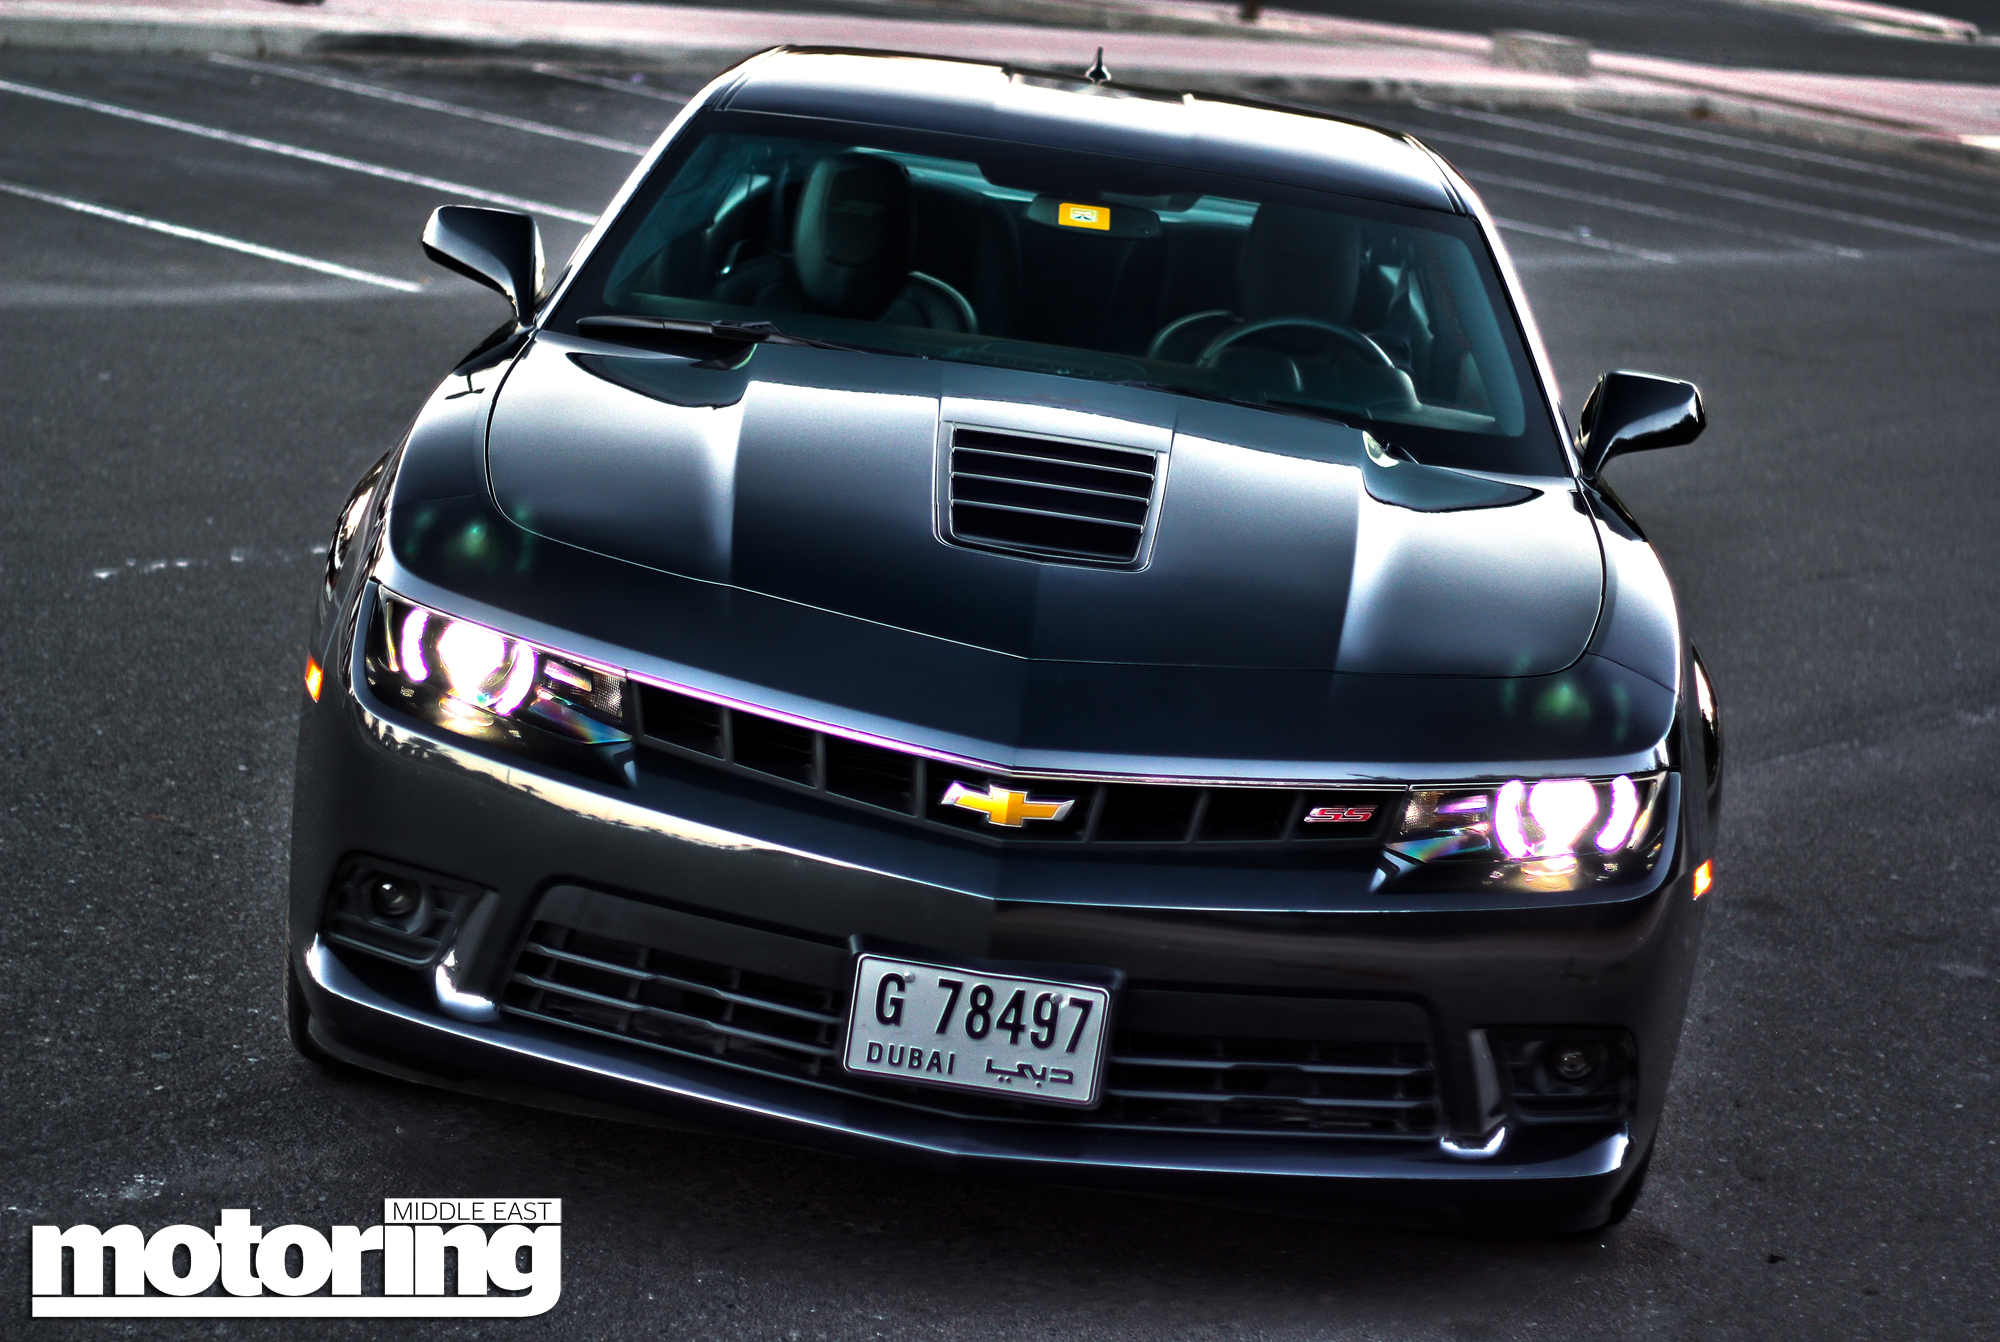 2014 Chevrolet Camaro SS Review  Motoring Middle East Car news